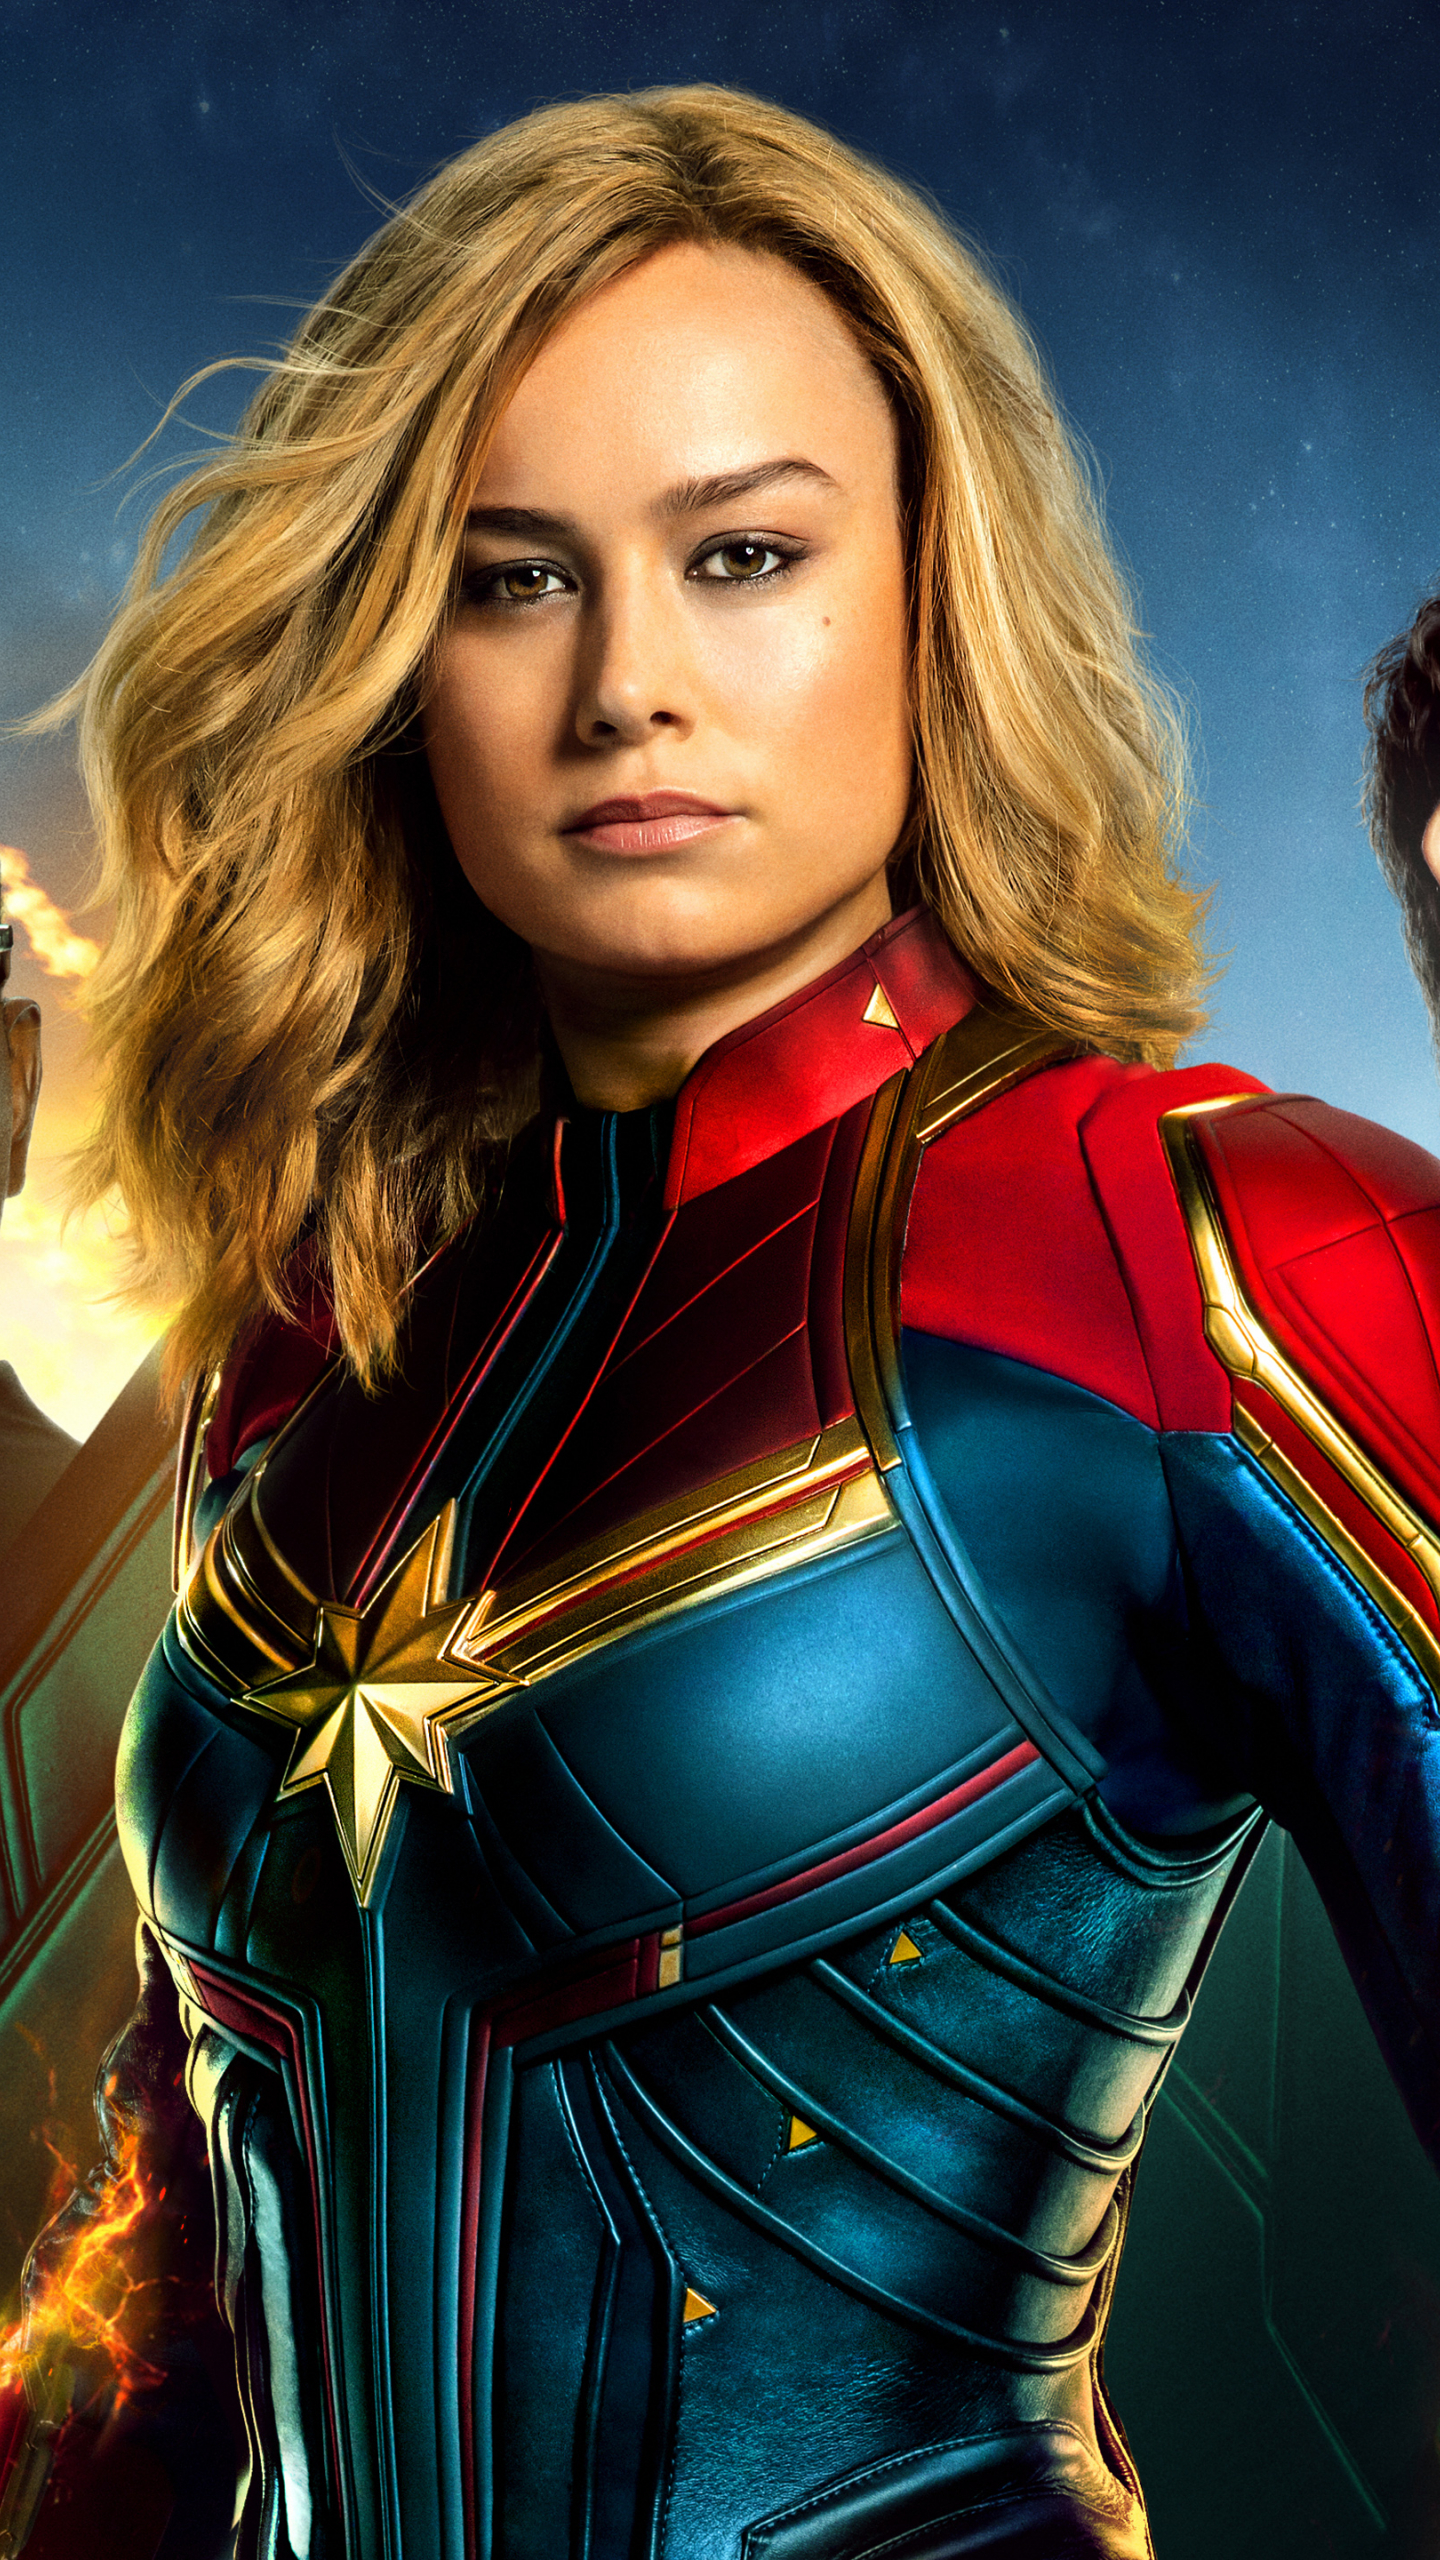 Free Download Captain Marvel Hd Wallpapers Hd Wallpapers 5120x2880 For Your Desktop Mobile Tablet Explore 29 Captain Marvel Wallpapers Captain Marvel Wallpaper Captain Marvel Wallpapers Captain Marvel Phone Wallpapers